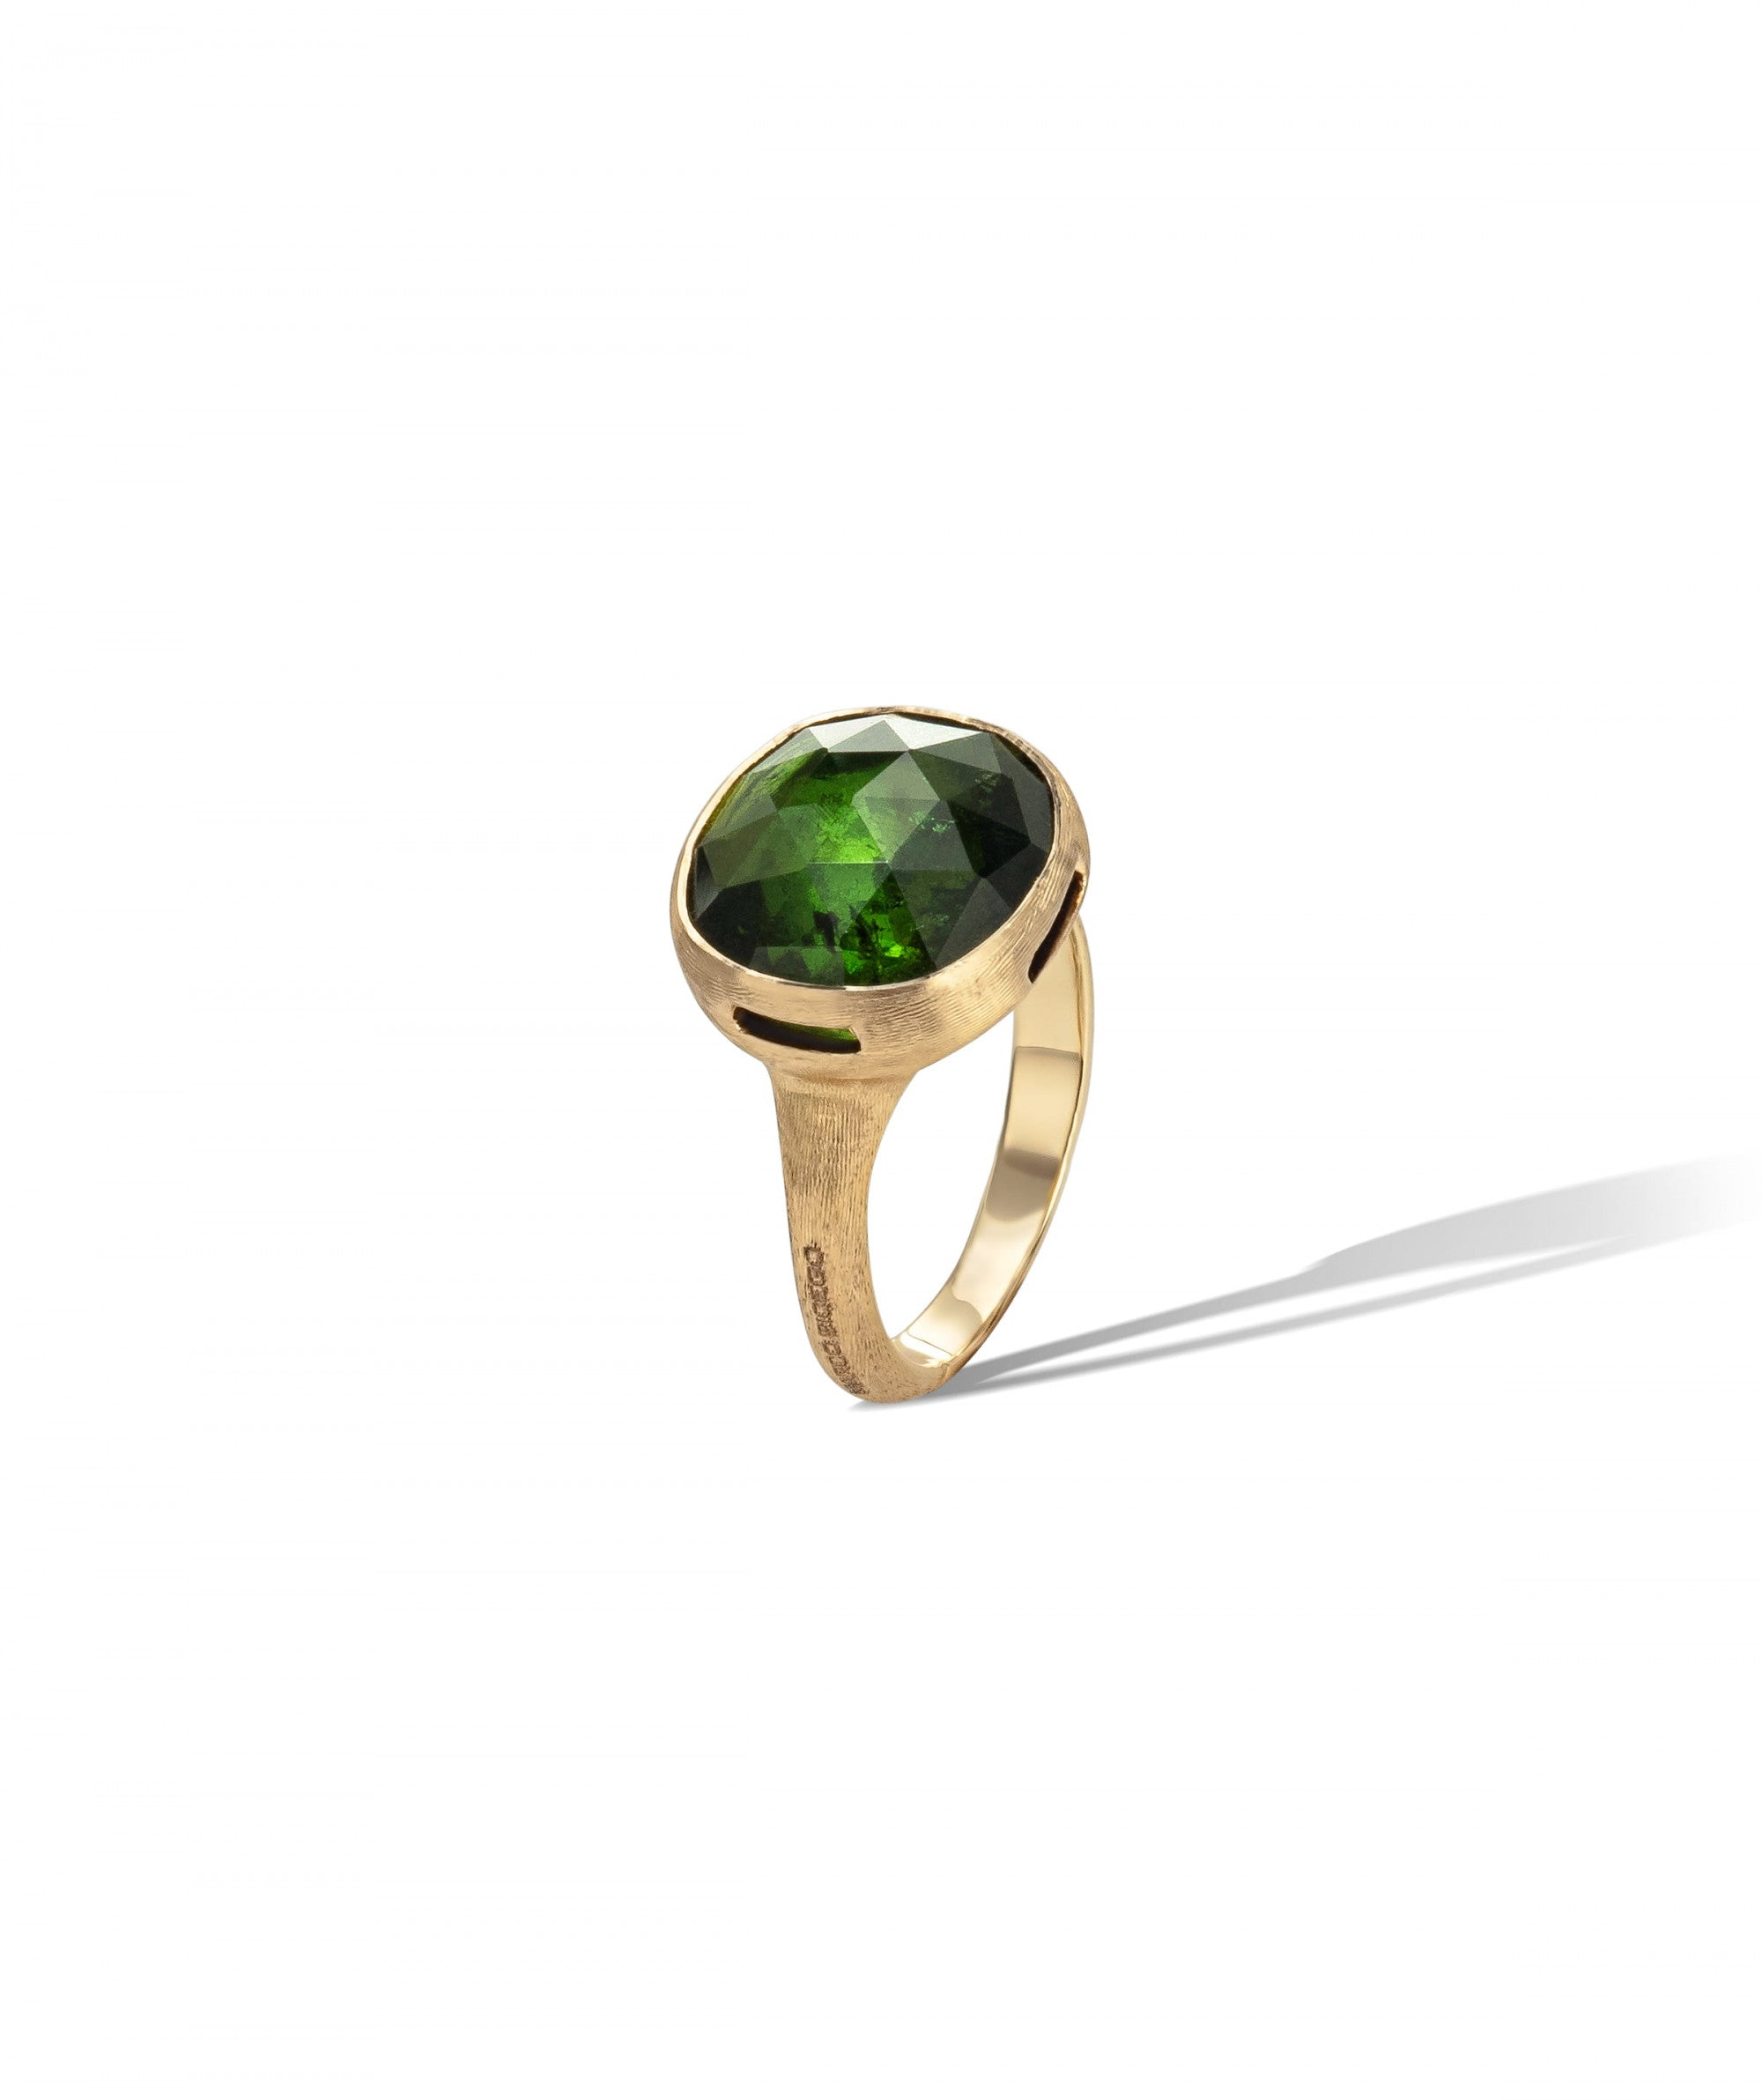 Jaipur Colour Ring in 18k Yellow Gold with Green Tourmaline Large - Orsini Jewellers NZ